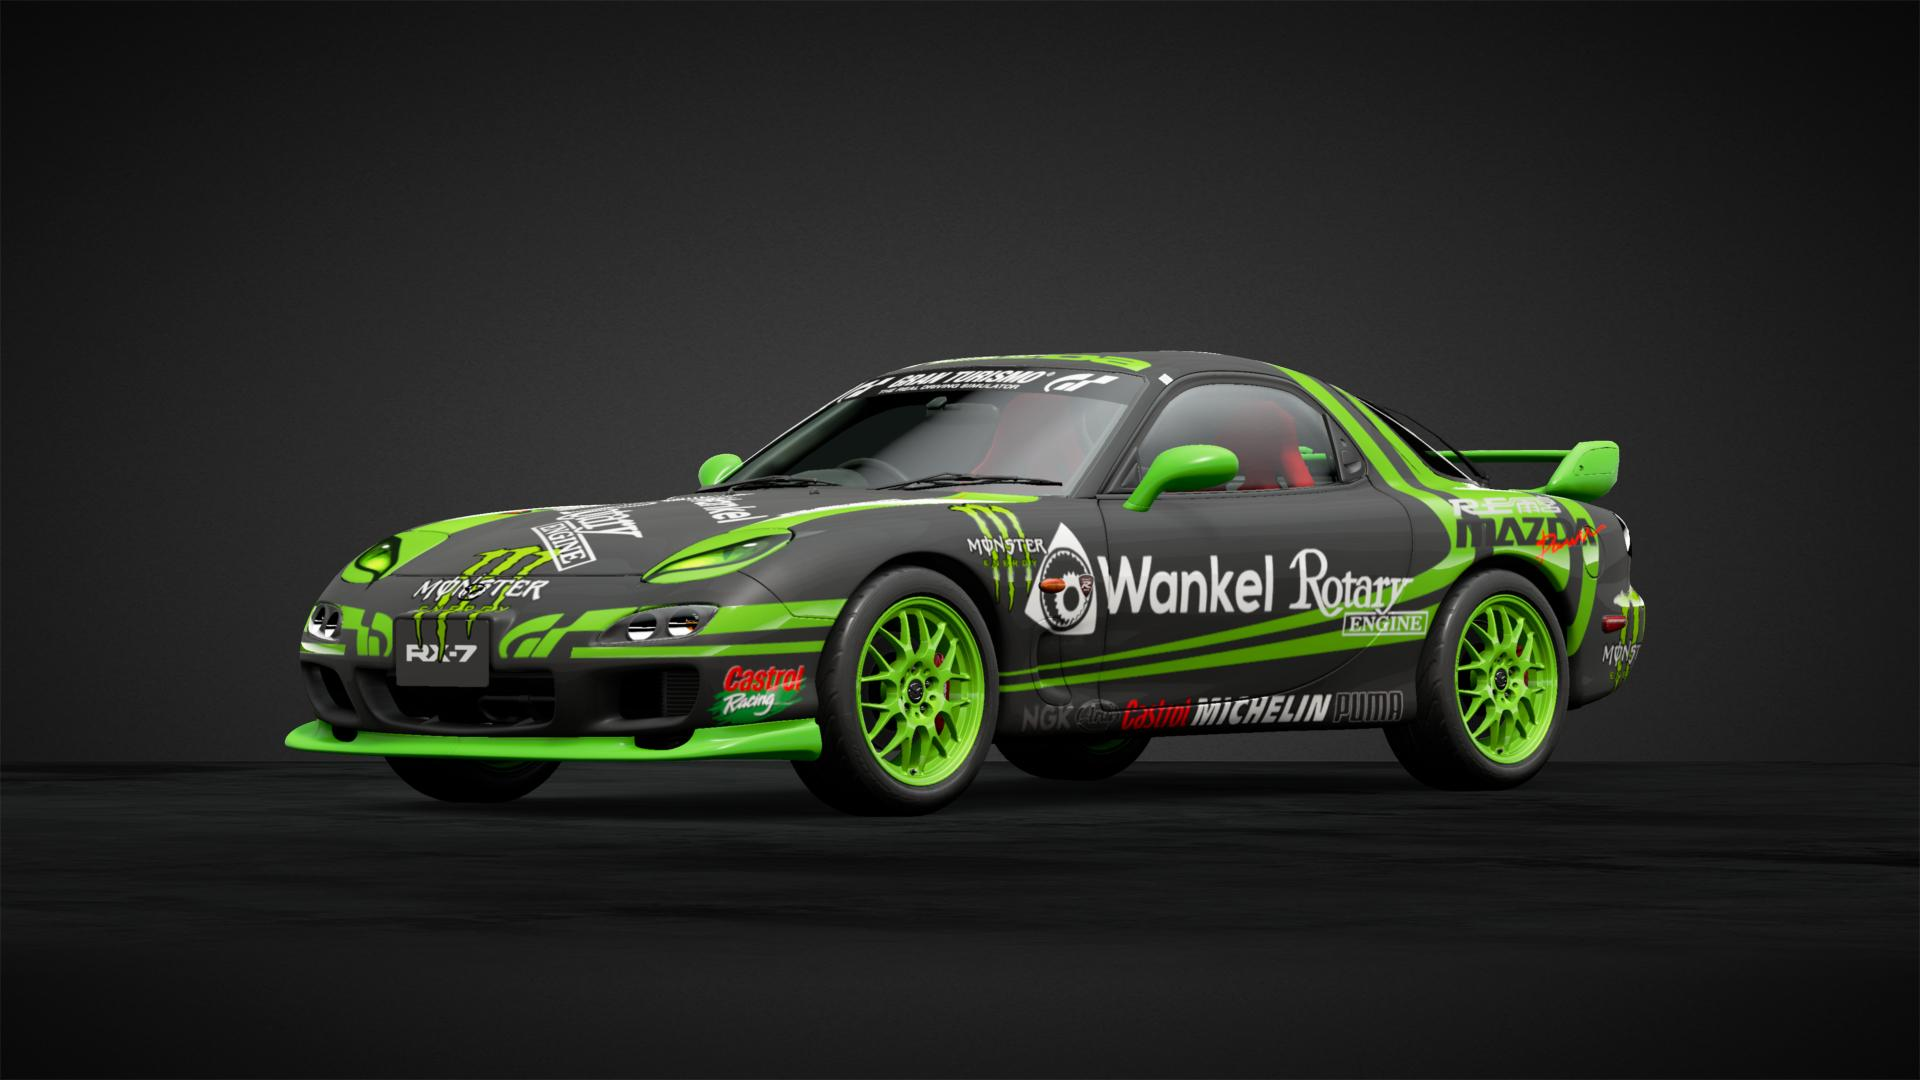 Mazda RX7 monster energy - Car Livery by robace | Community